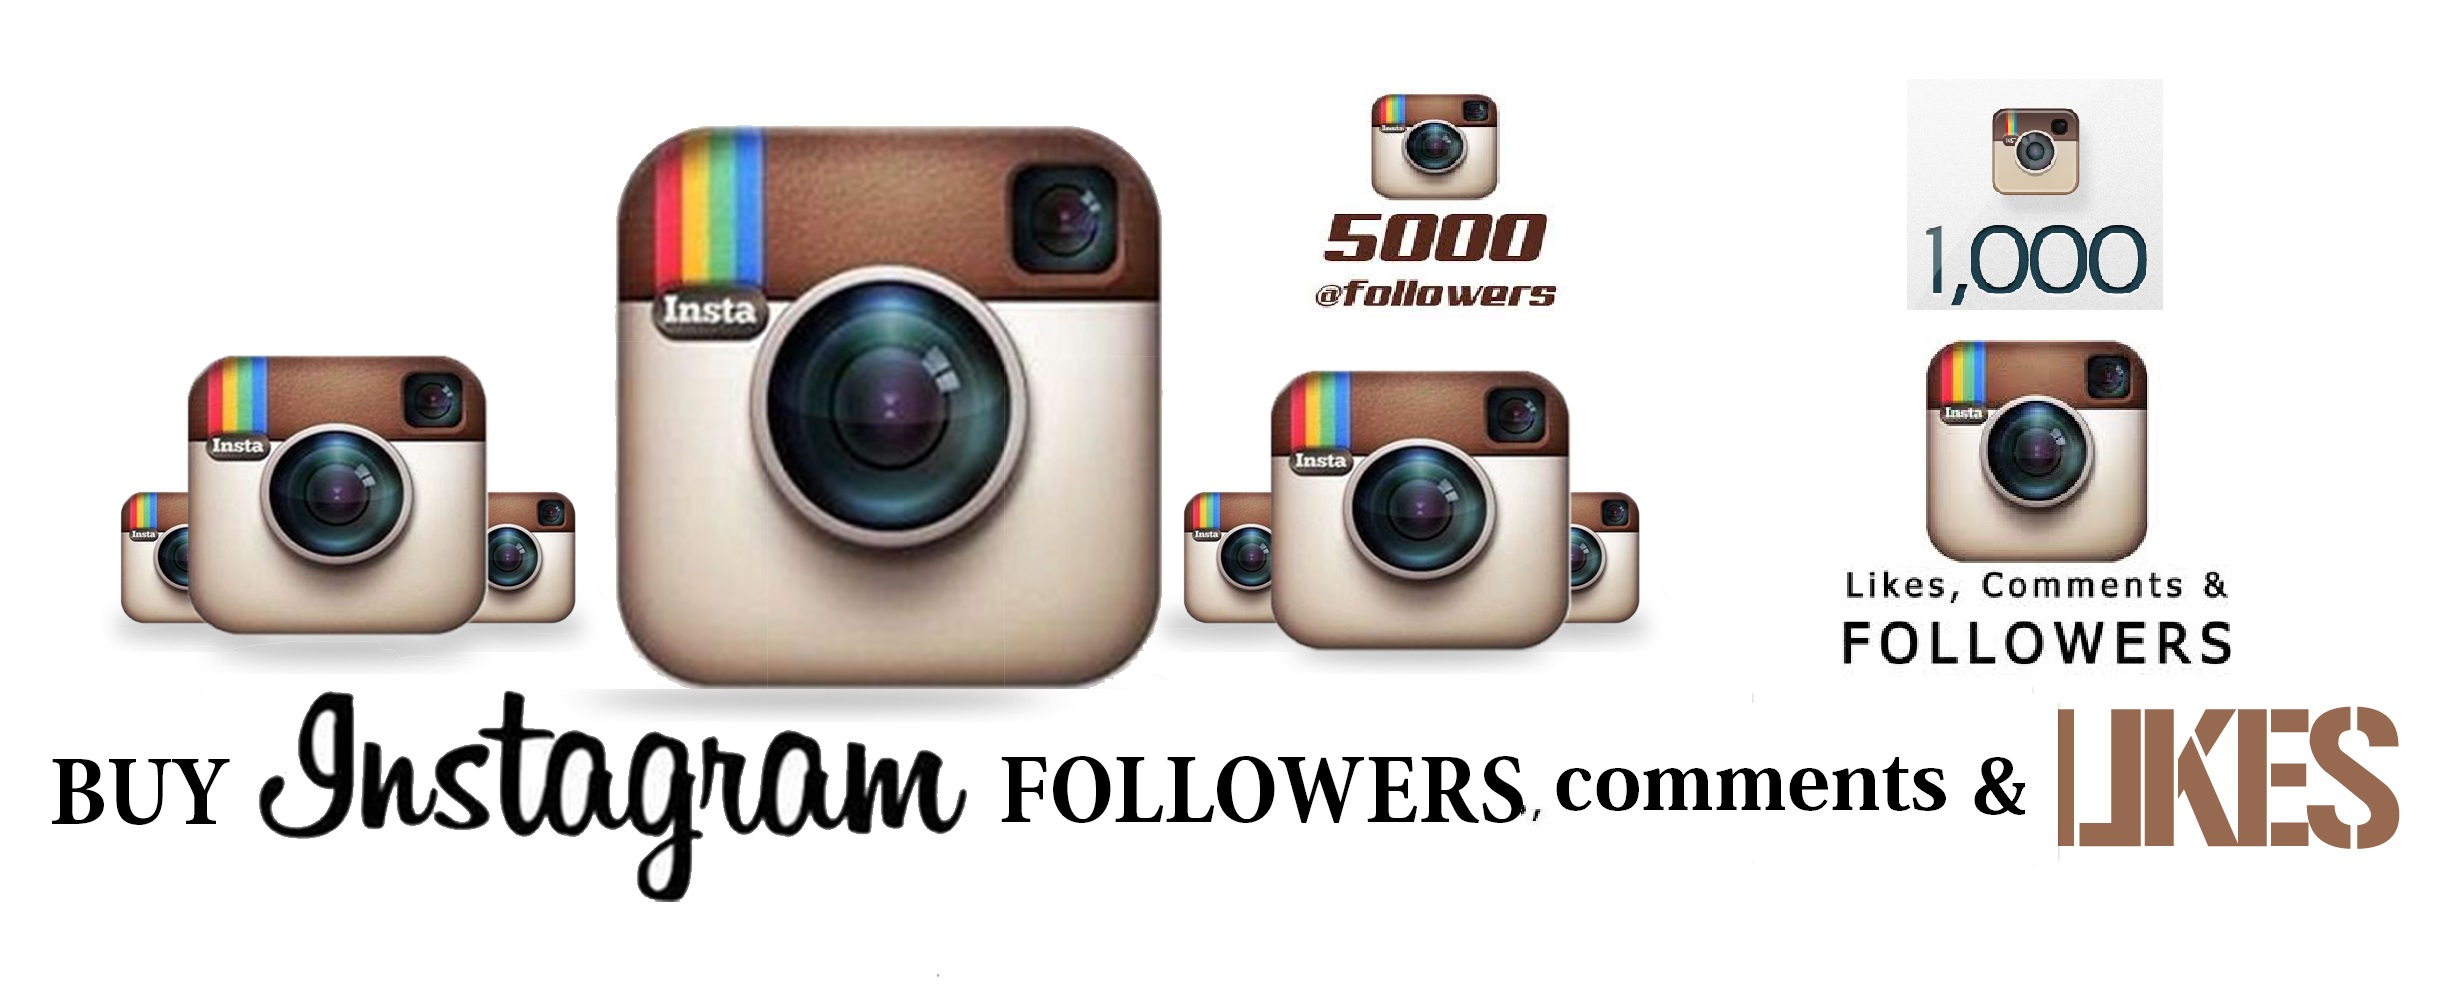 Buy 1000 Instagram Followers Social Media Marketing Digital